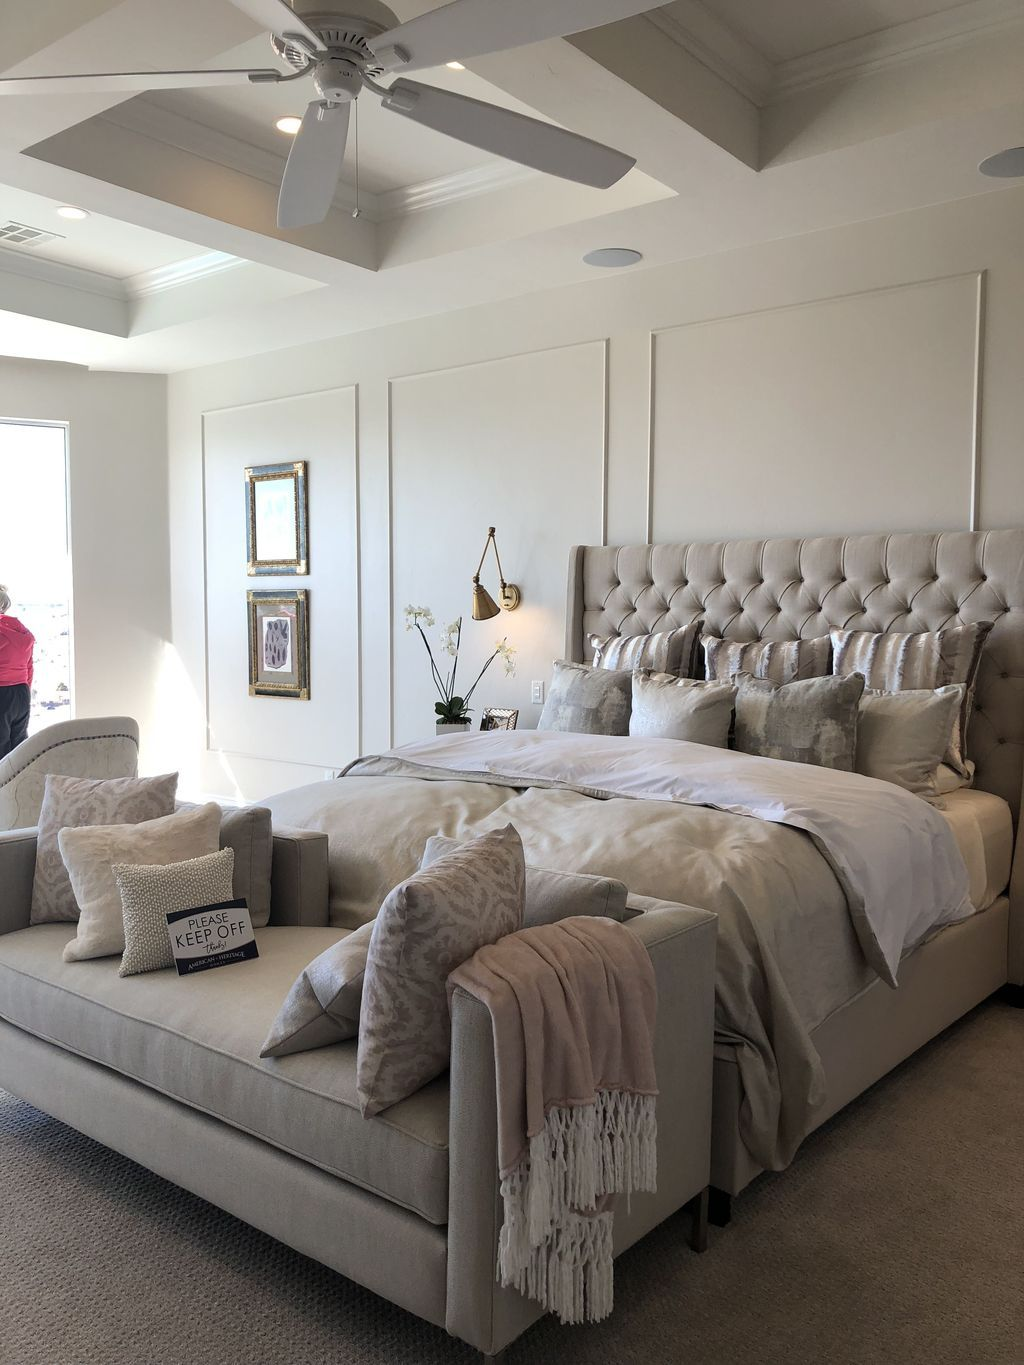 50 perfect elegant bedroom design ideas luxurious on modern luxurious bedroom ideas decoration some inspiration to advise you in decorating your room id=24091